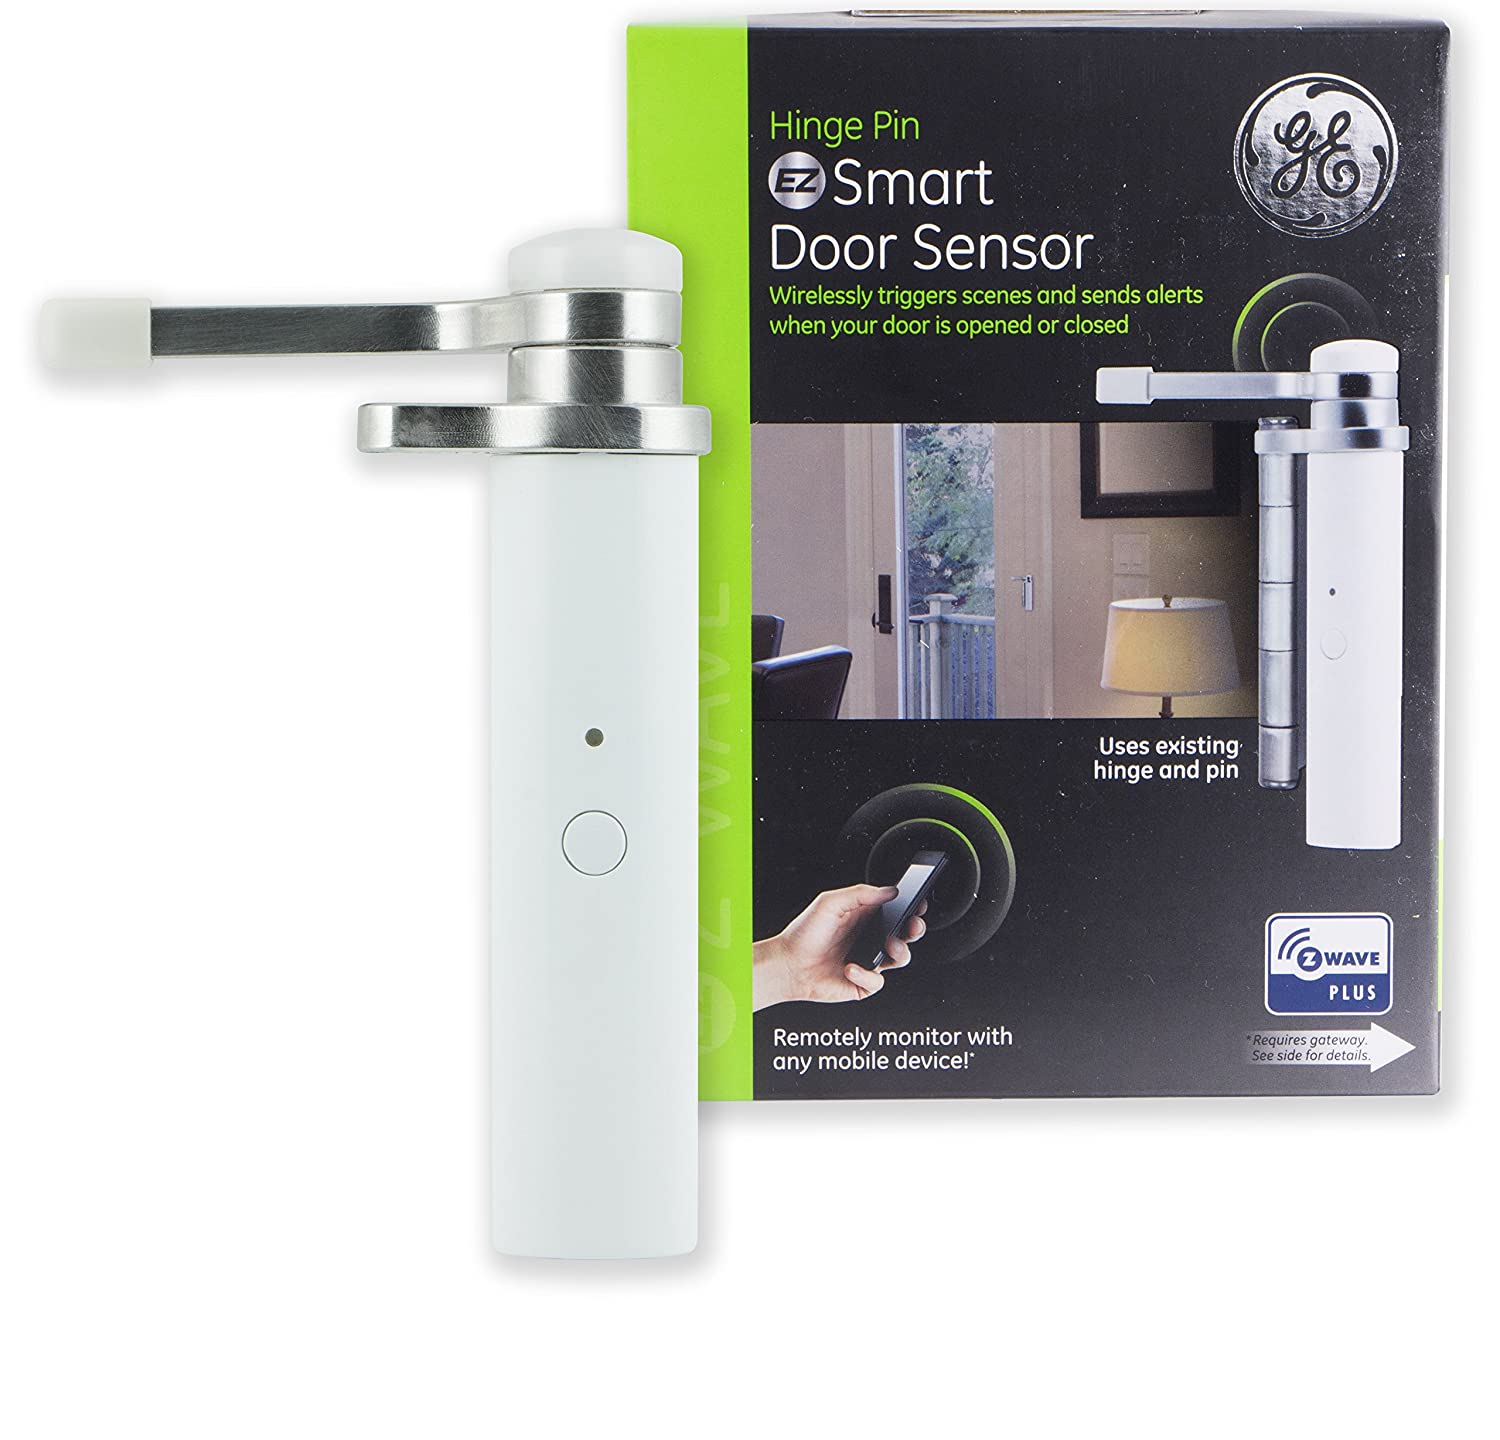 GE Enbrighten Z-Wave Plus Smart Pin Sensor, Attaches to Existing Door Hinge, Left or Right Opening, Repeater/Range Extender, Works with SmartThings, Wink, Iris, 32563, White